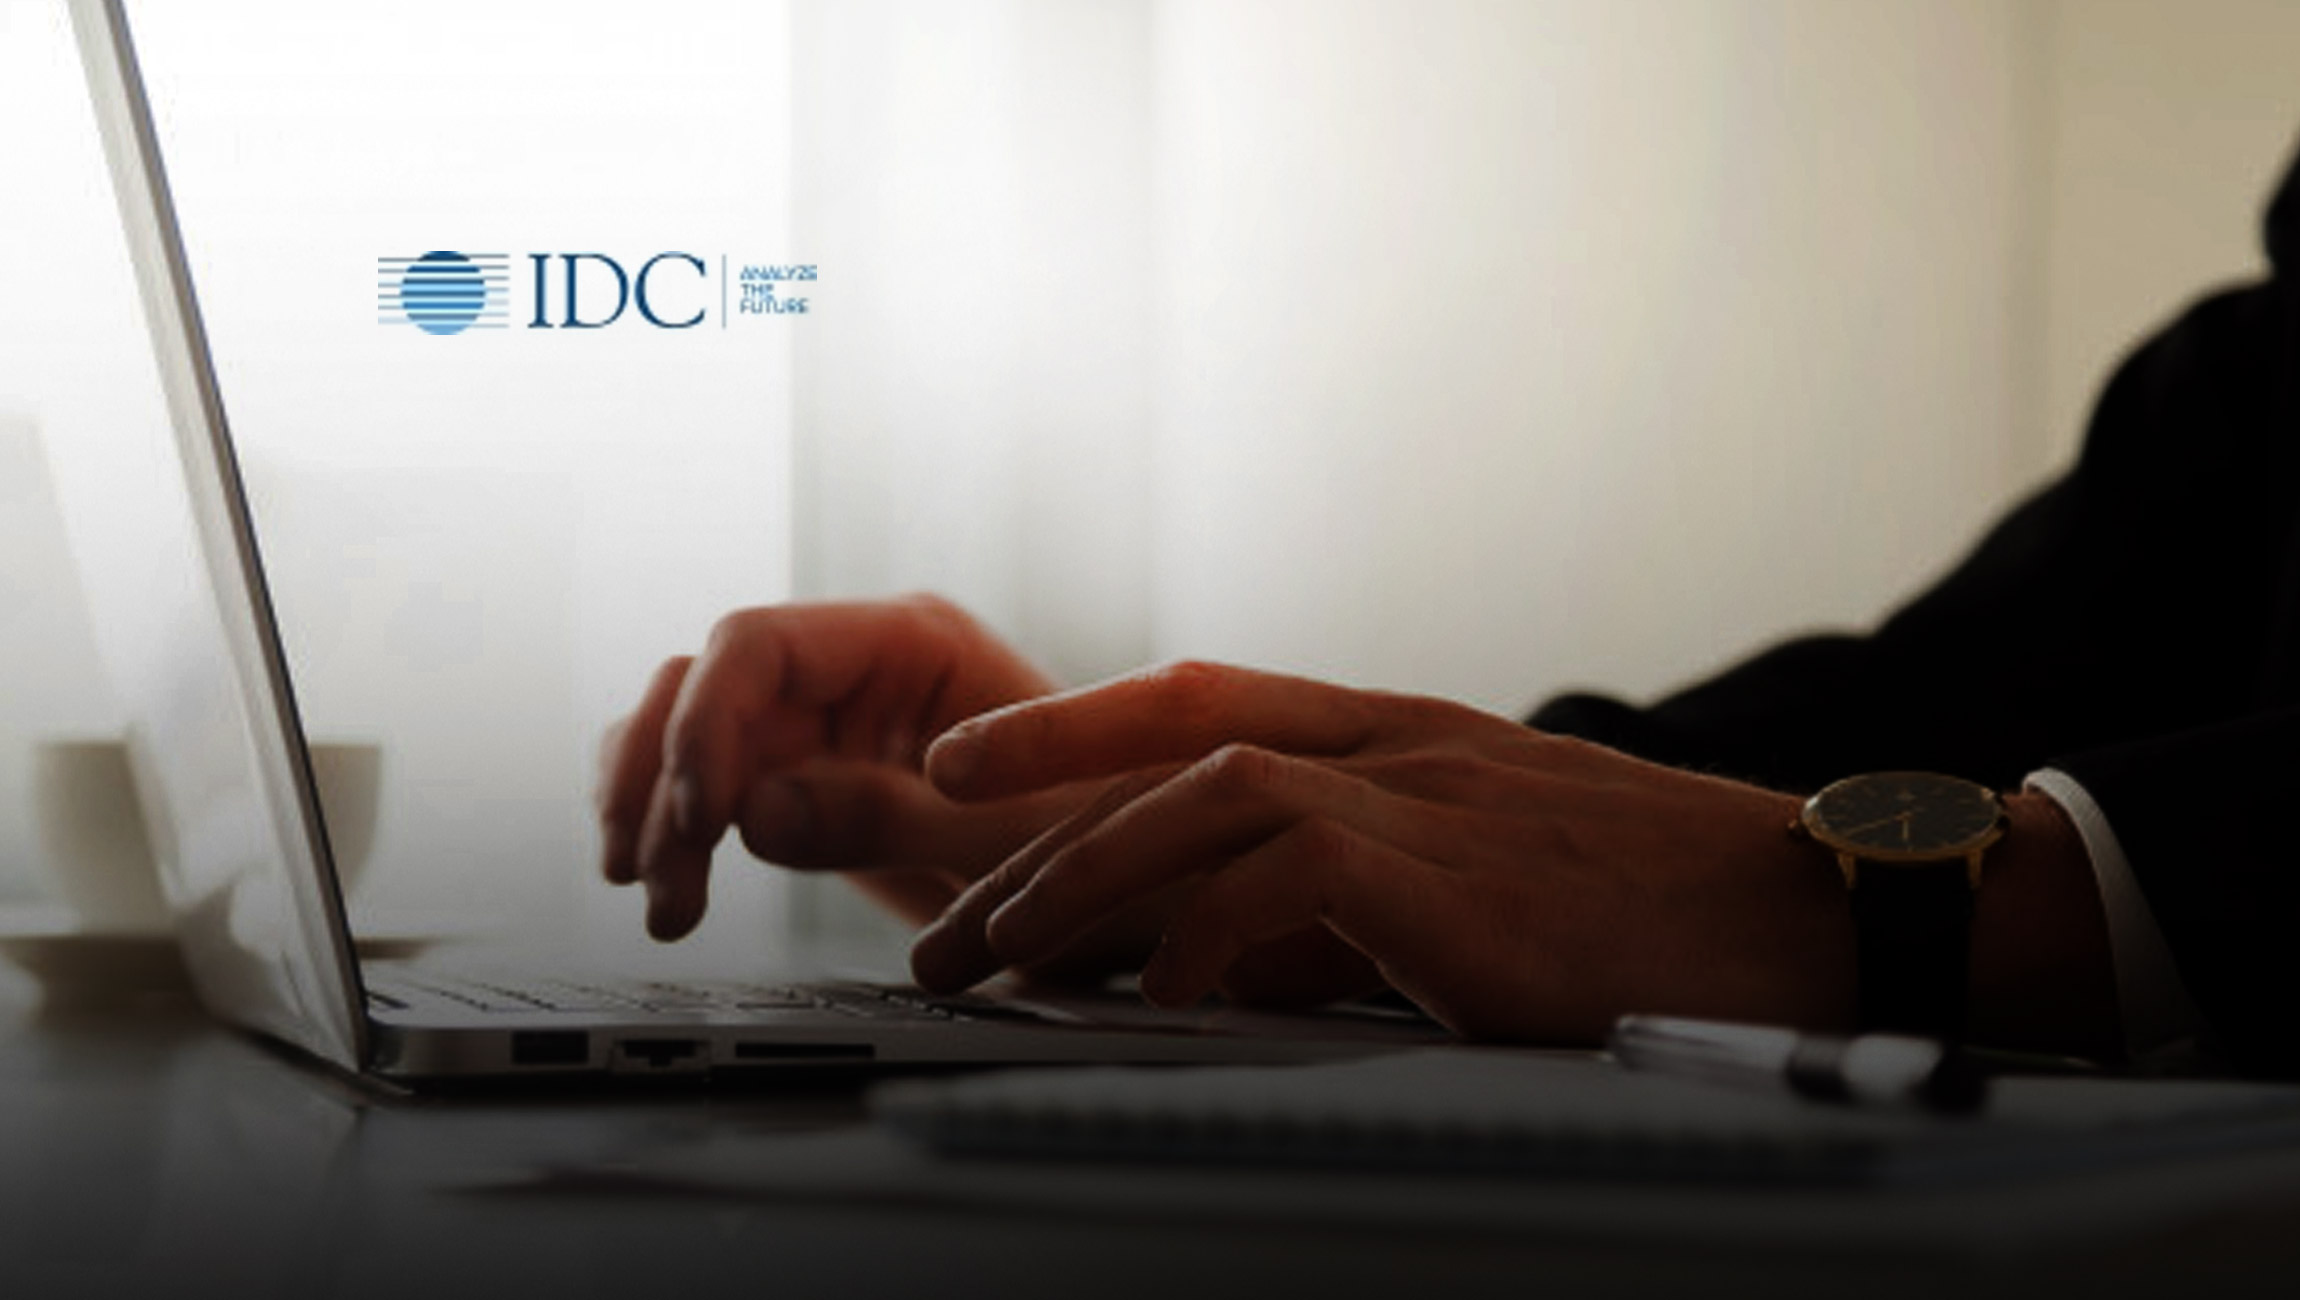 IDC Launches Future of Digital Infrastructure Practice to Highlight the Critical Importance of Responsive, Scalable, and Resilient Cloud-Centric Infrastructure to Digital Transformation Success